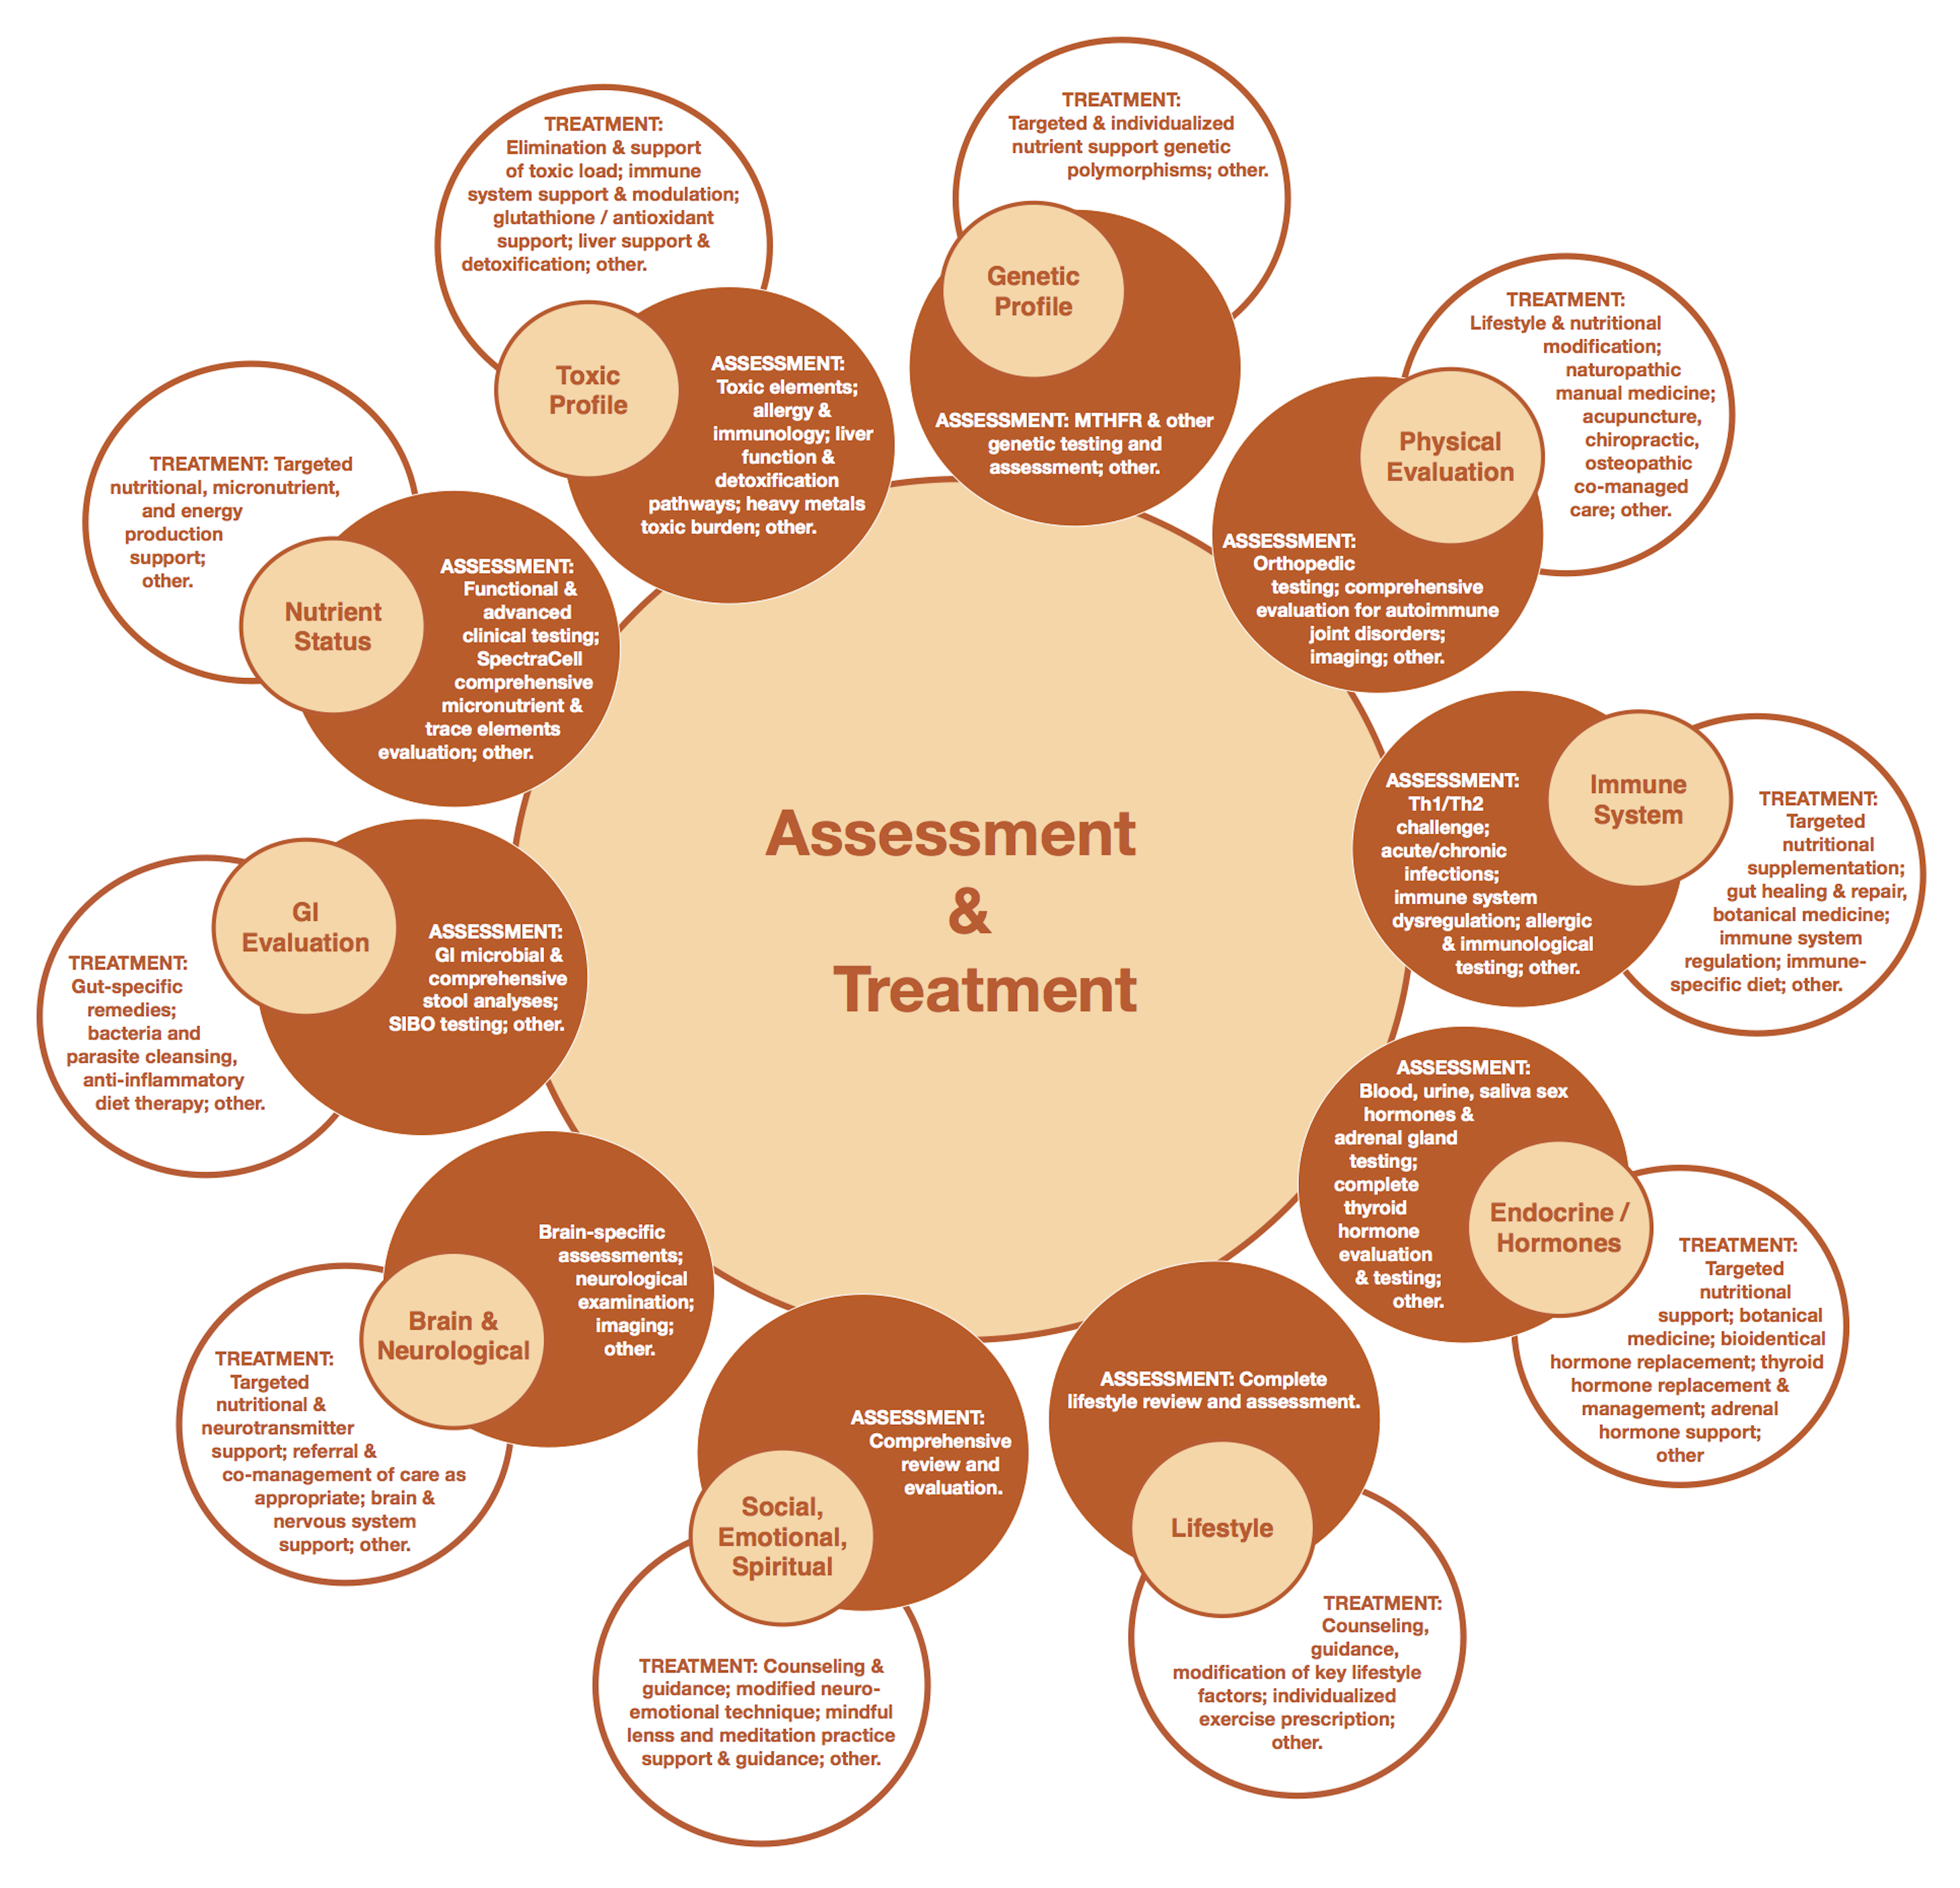 Treatment of autoimmune thyroiditis: the main methods 39